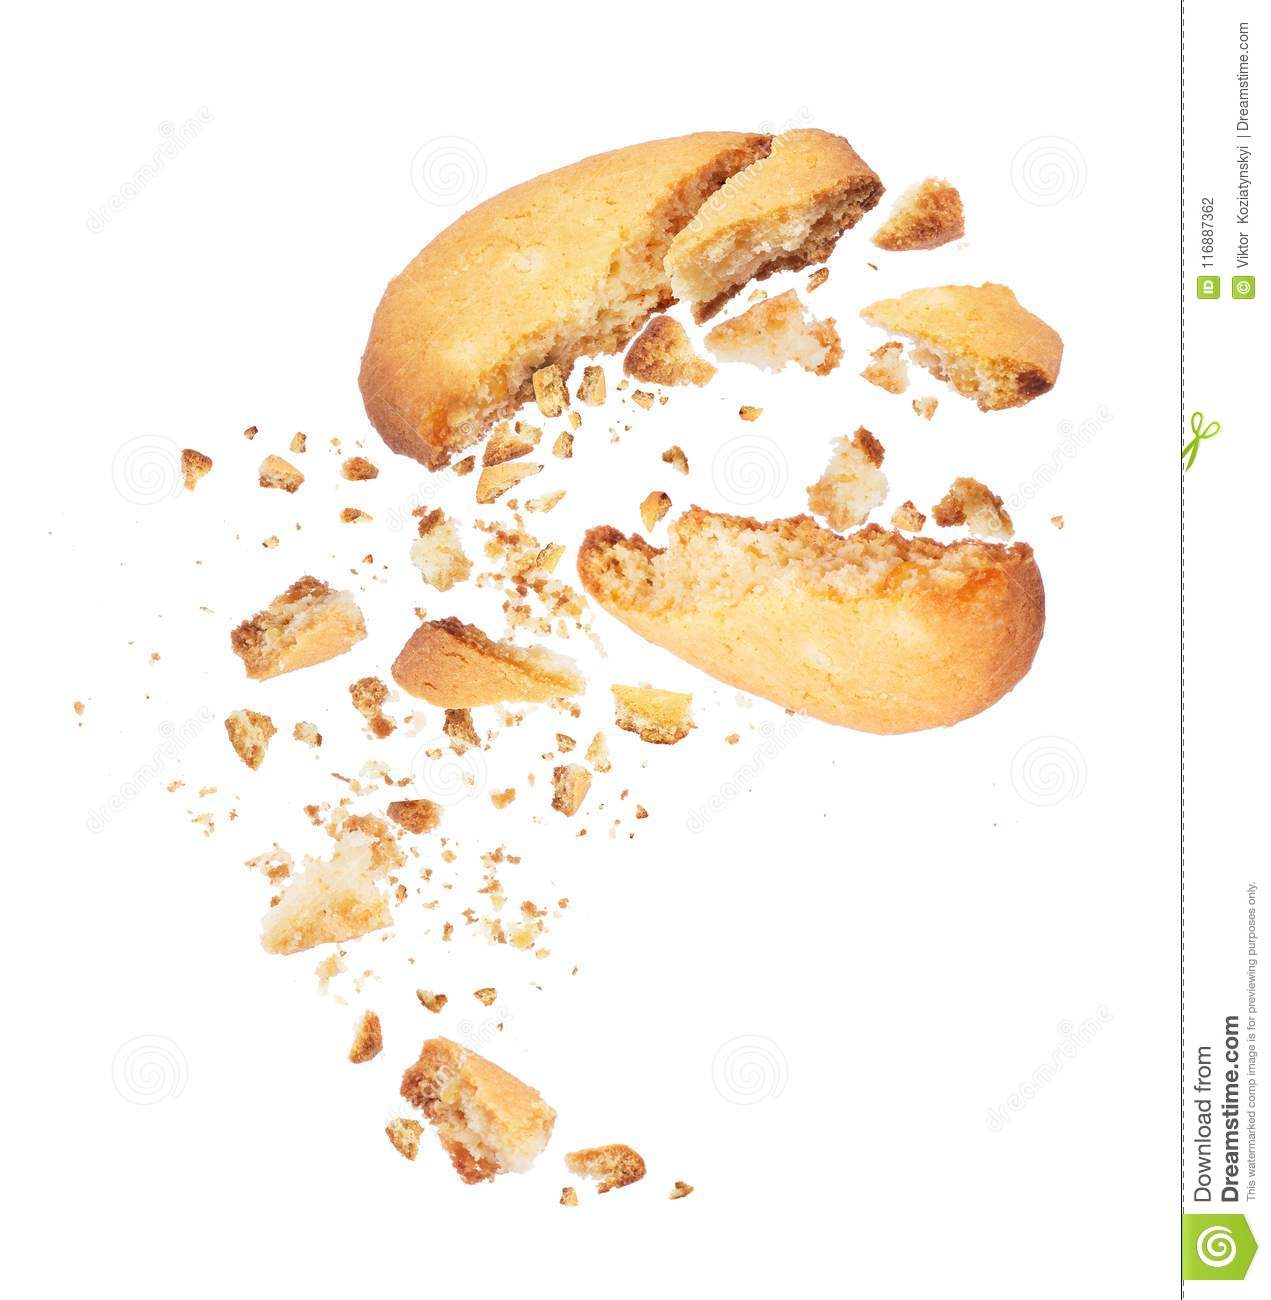 Biscuit broken into two halves with falling crumbs down